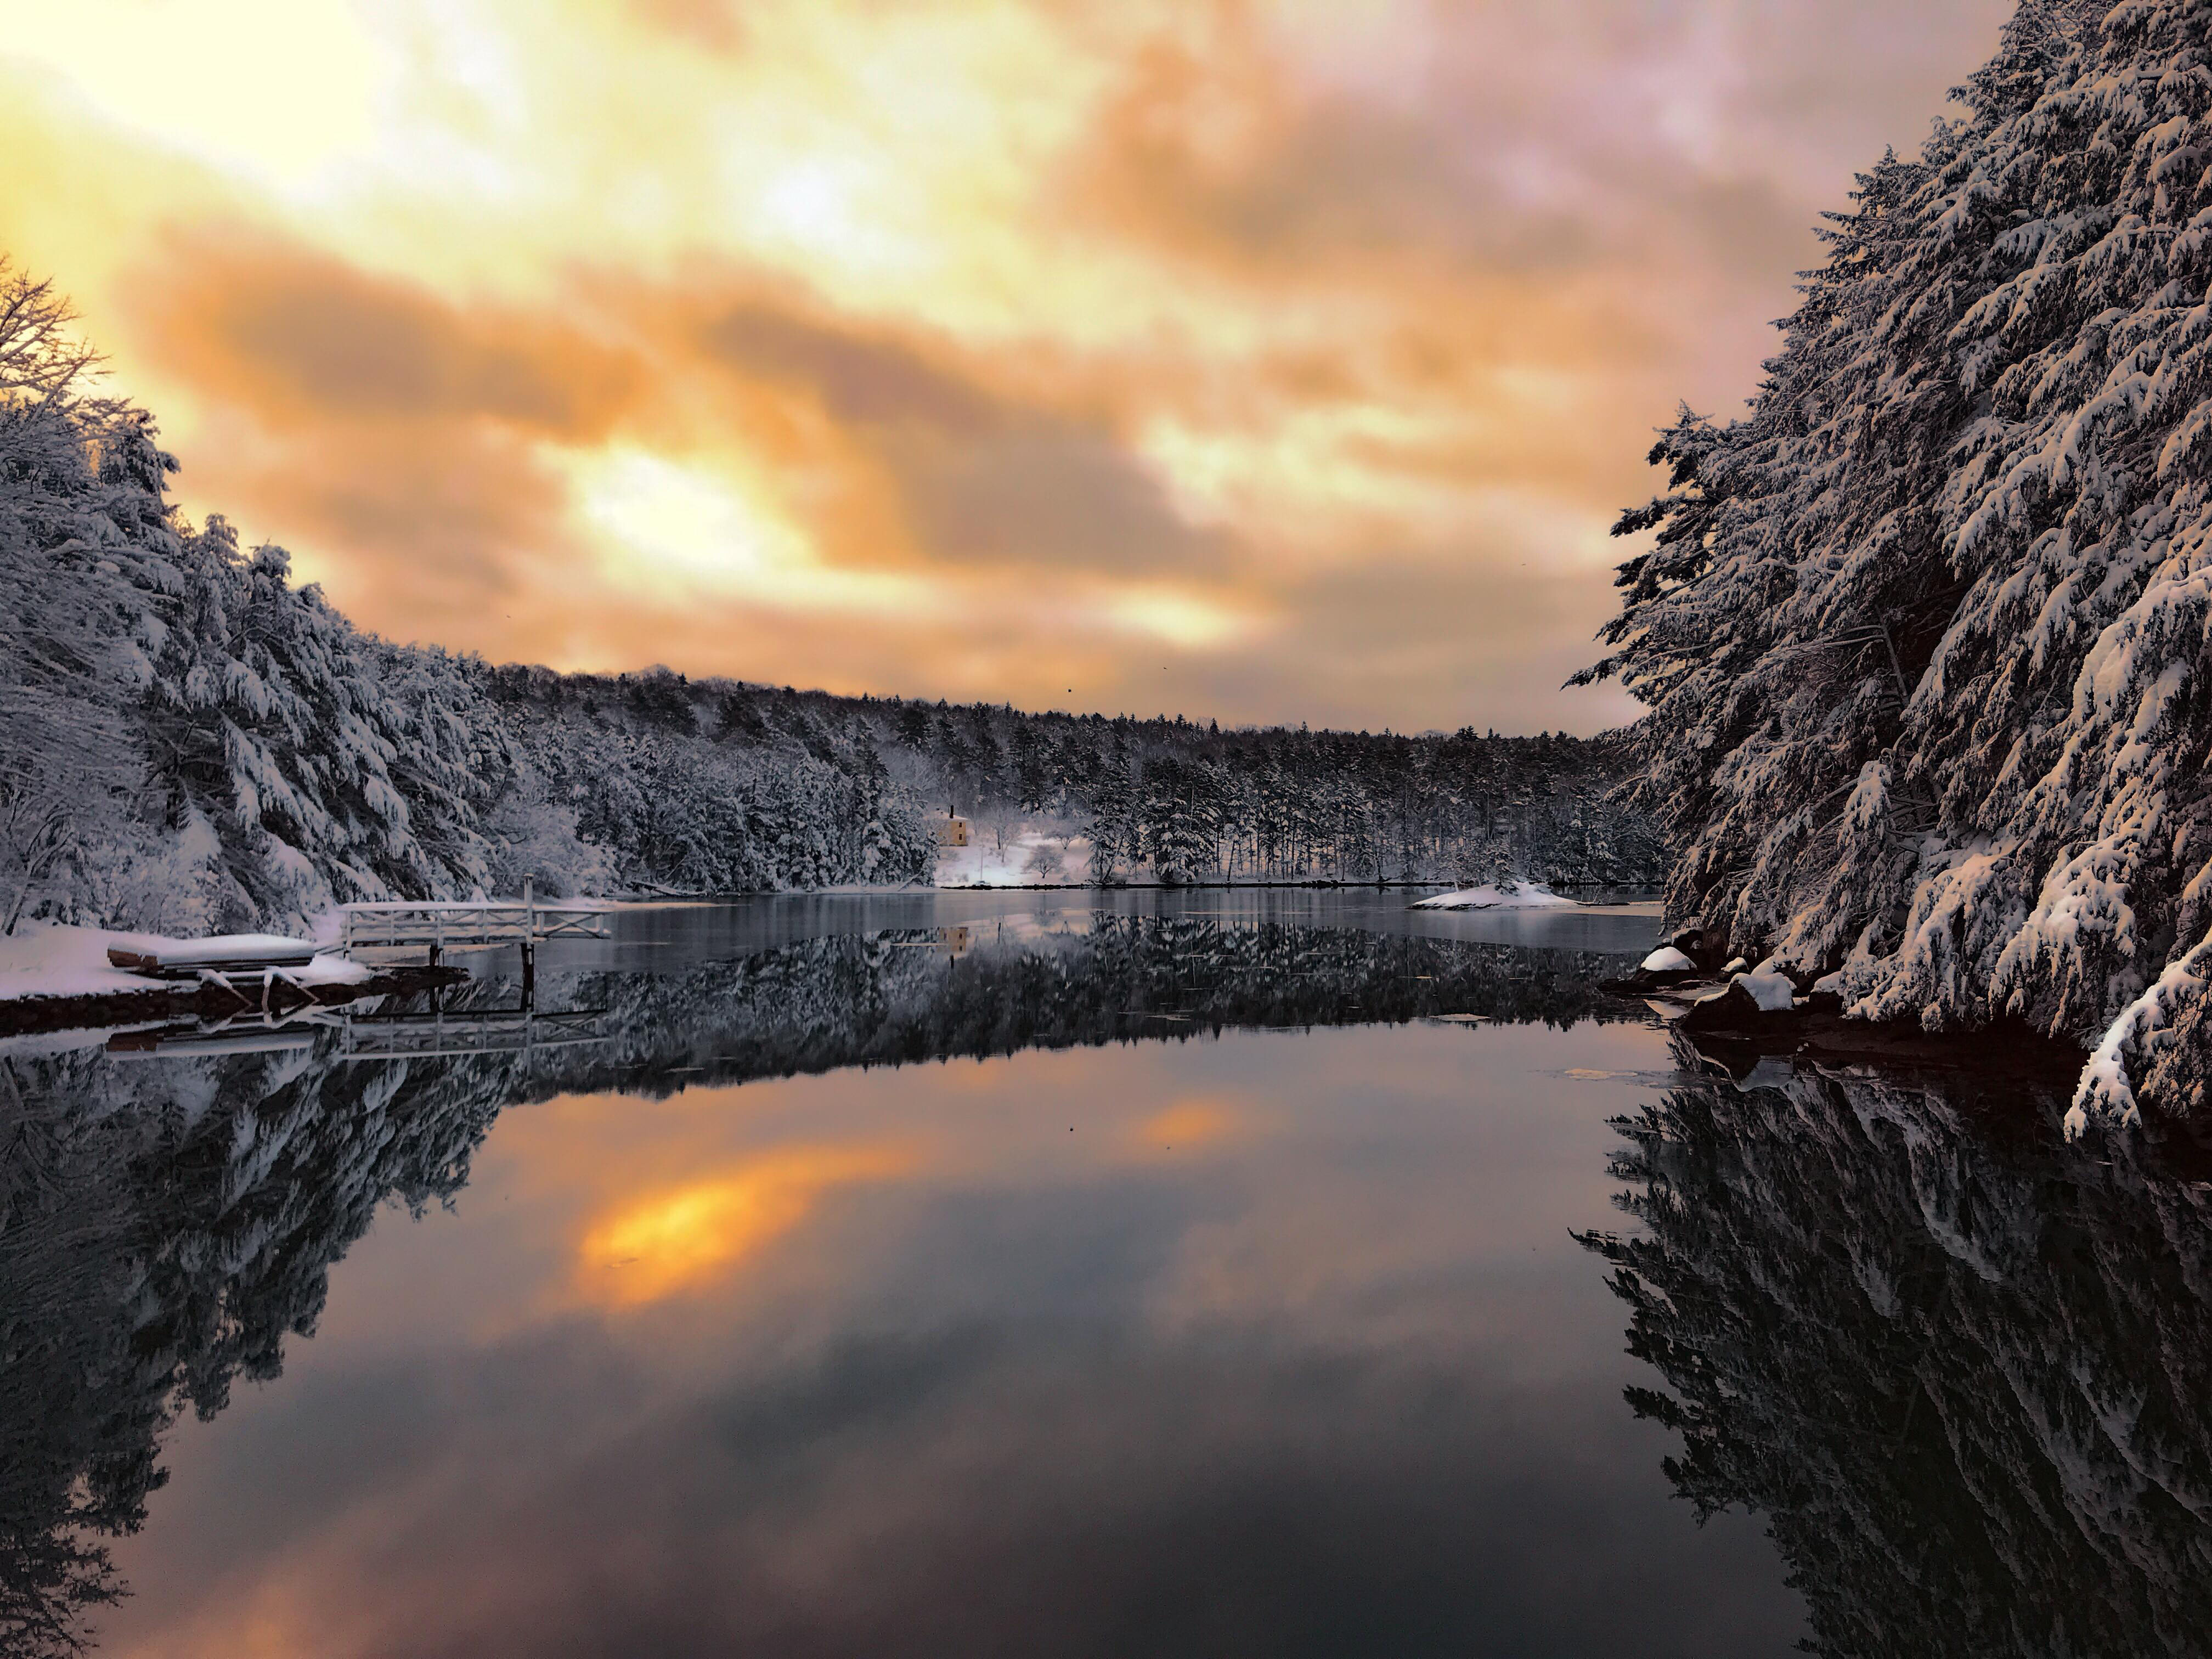 Damariscotta photographer Dennis Boyd won the 2018 #LCNme365 photo contest with his shot of Parsons Creek in Edgecomb after receiving the most reader votes in an online poll. Boyd will receive a prize package from Lincoln County Publishing Co., including the first copy of the 2019 calendar featuring the monthly winners of the contest.